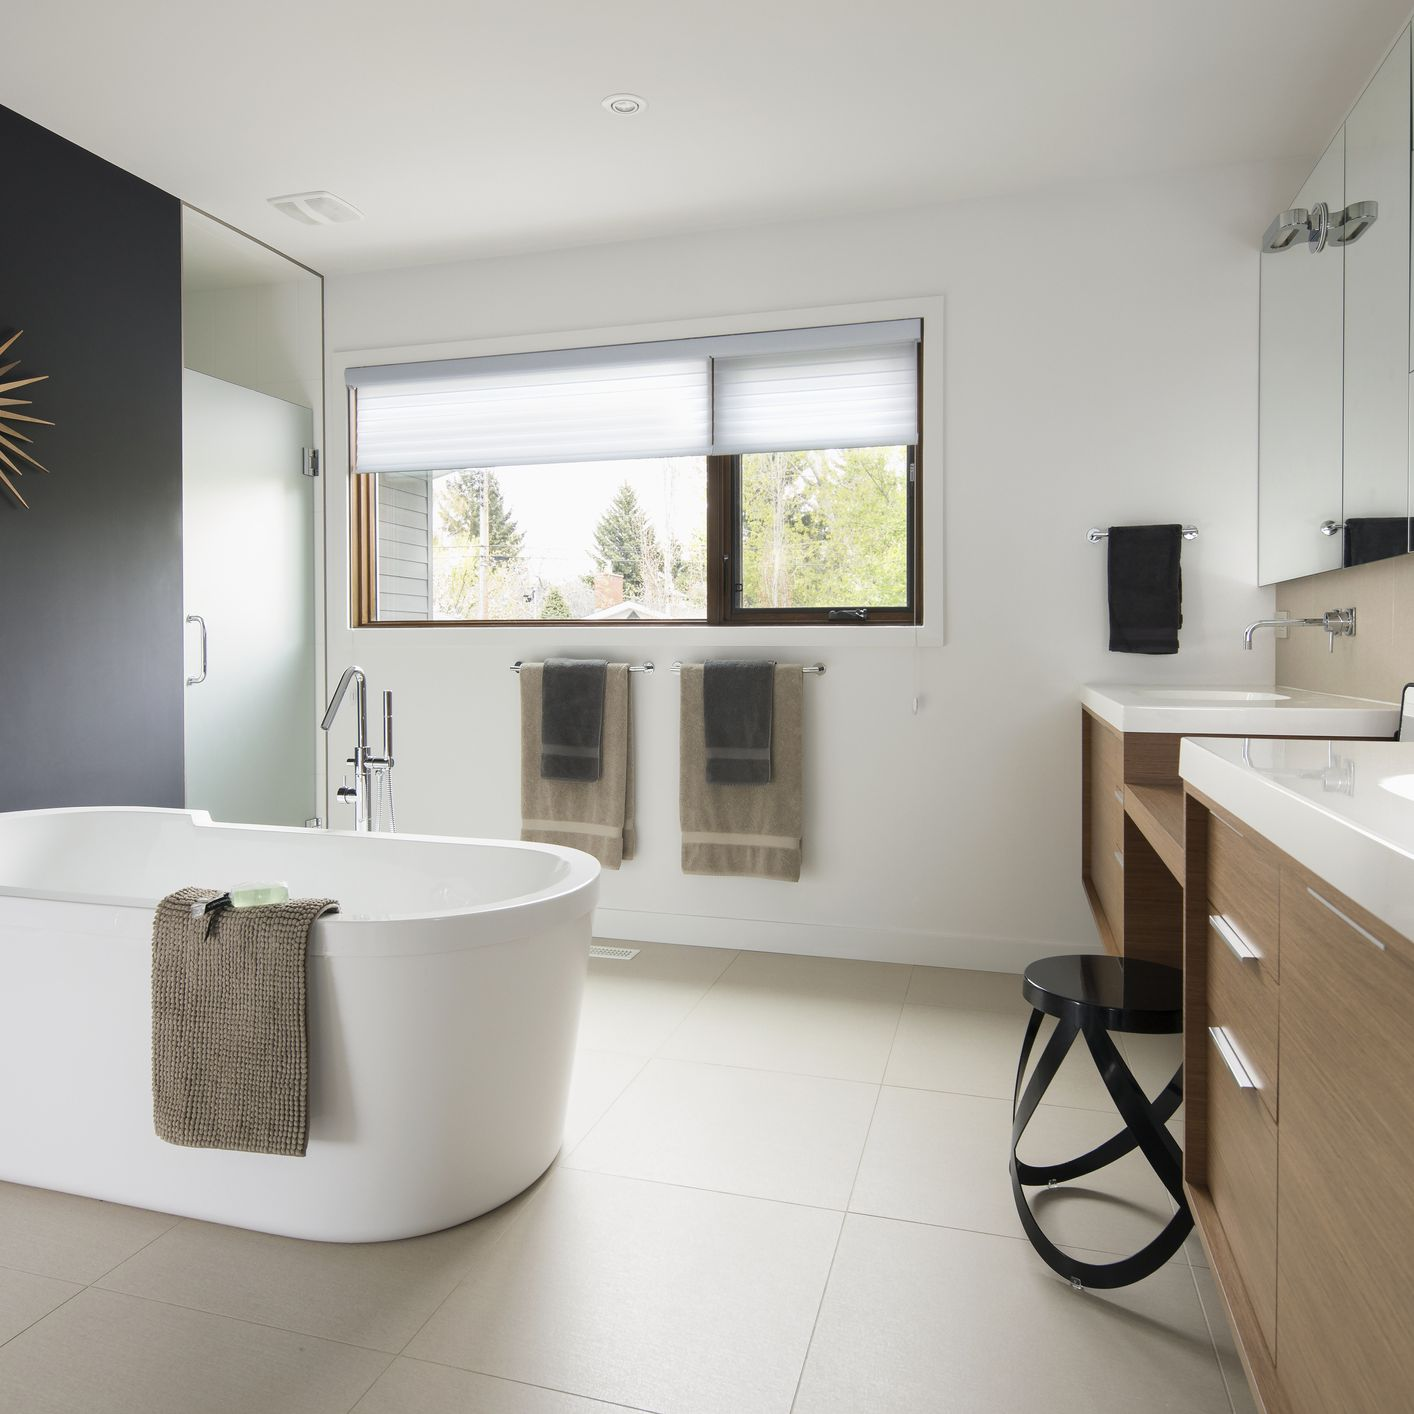 7 Essential Improvements For Your Next Bathroom Remodel